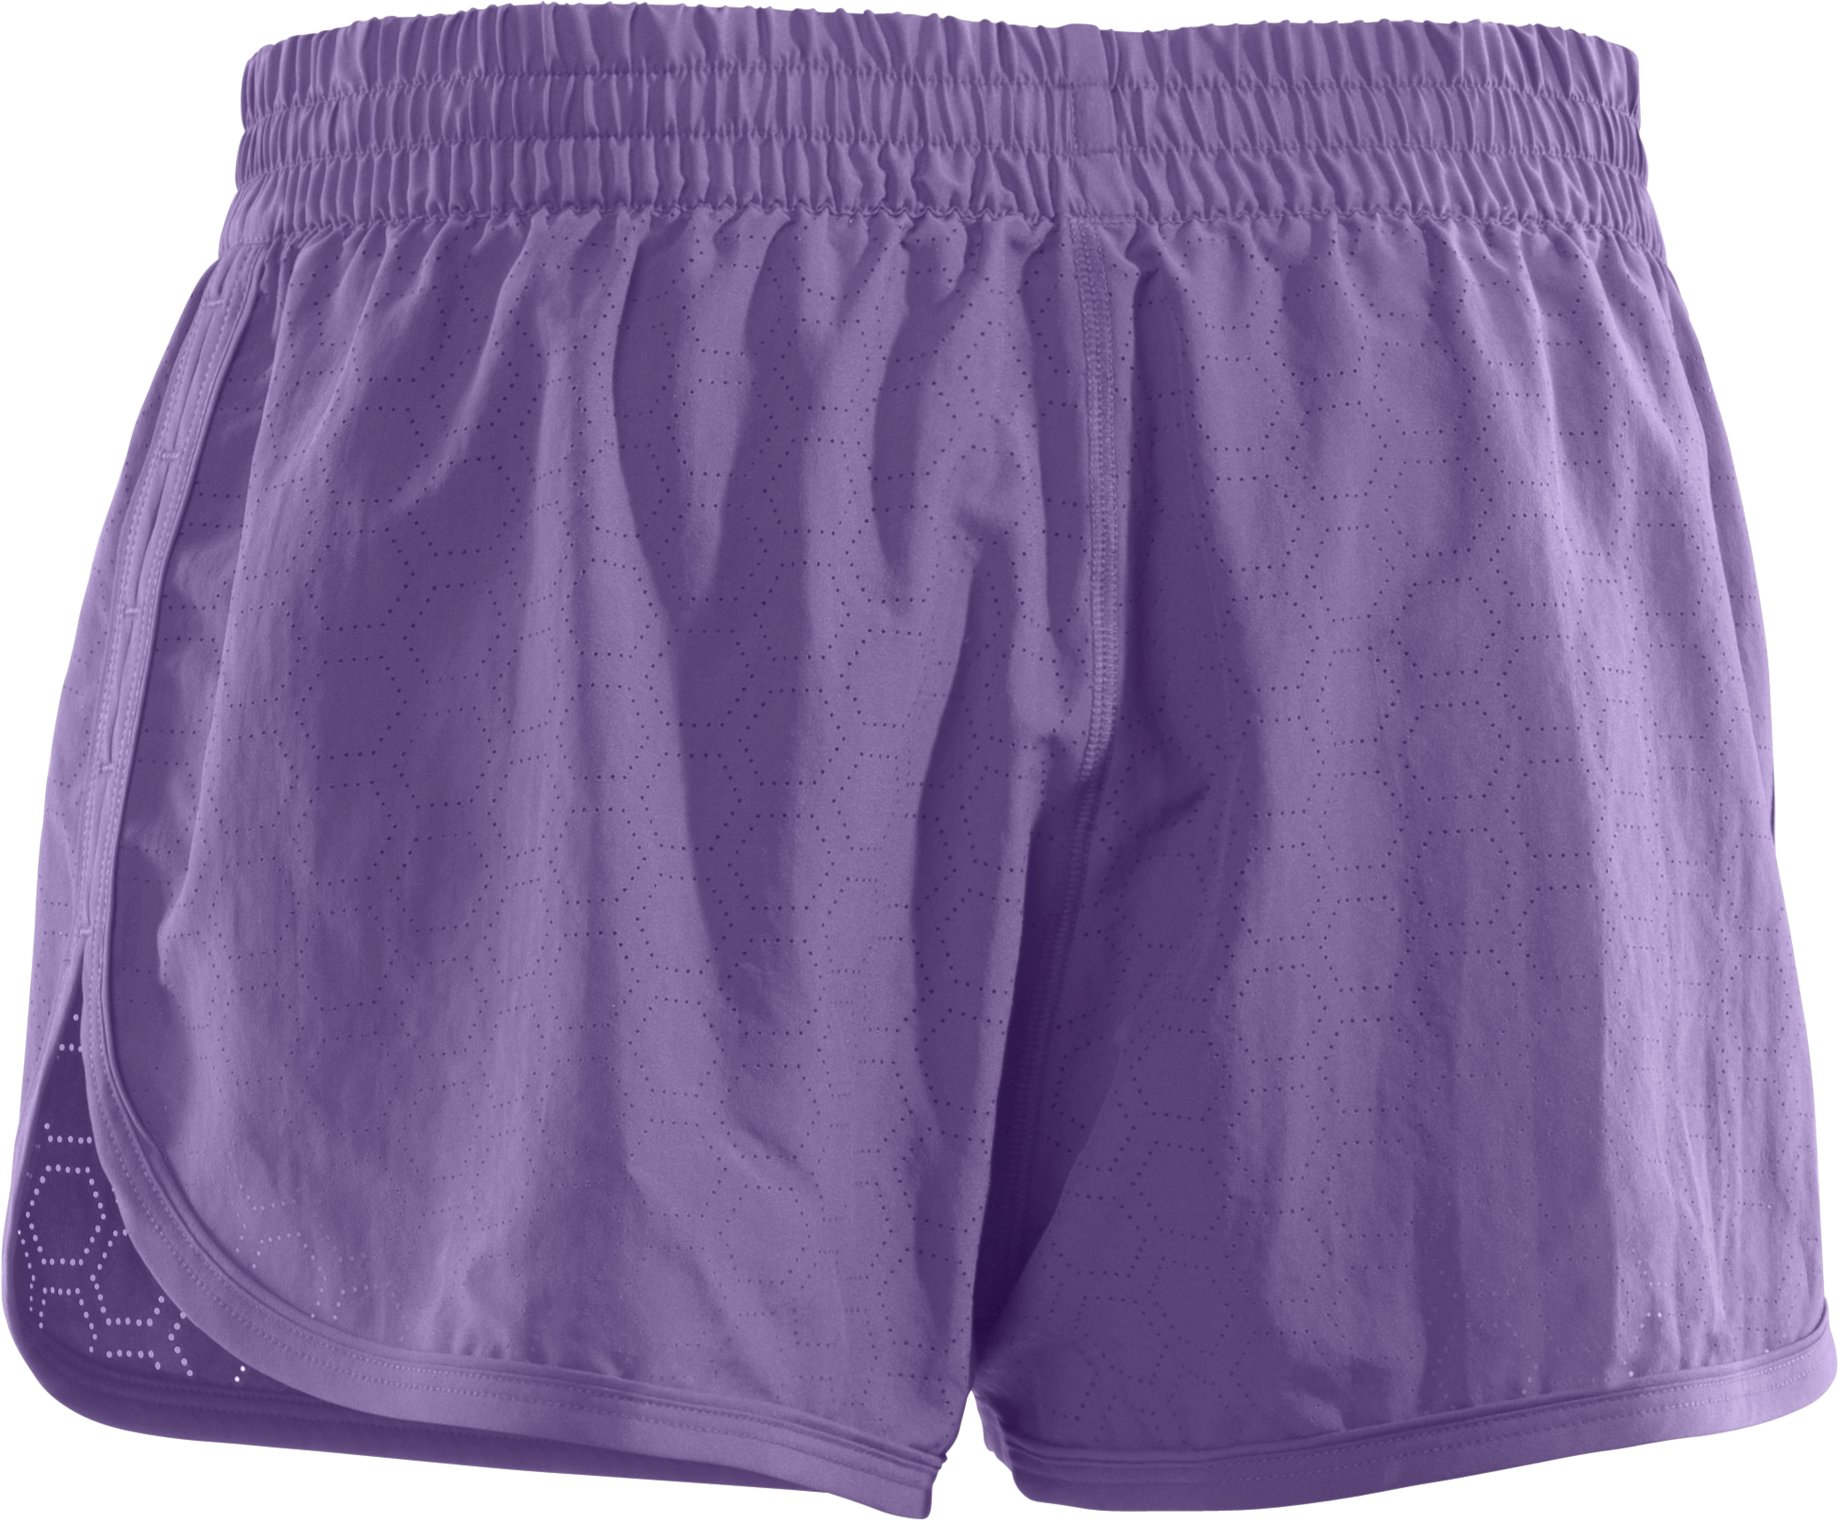 Women's Perforated UA Great Escape Shorts II, Petunia, undefined